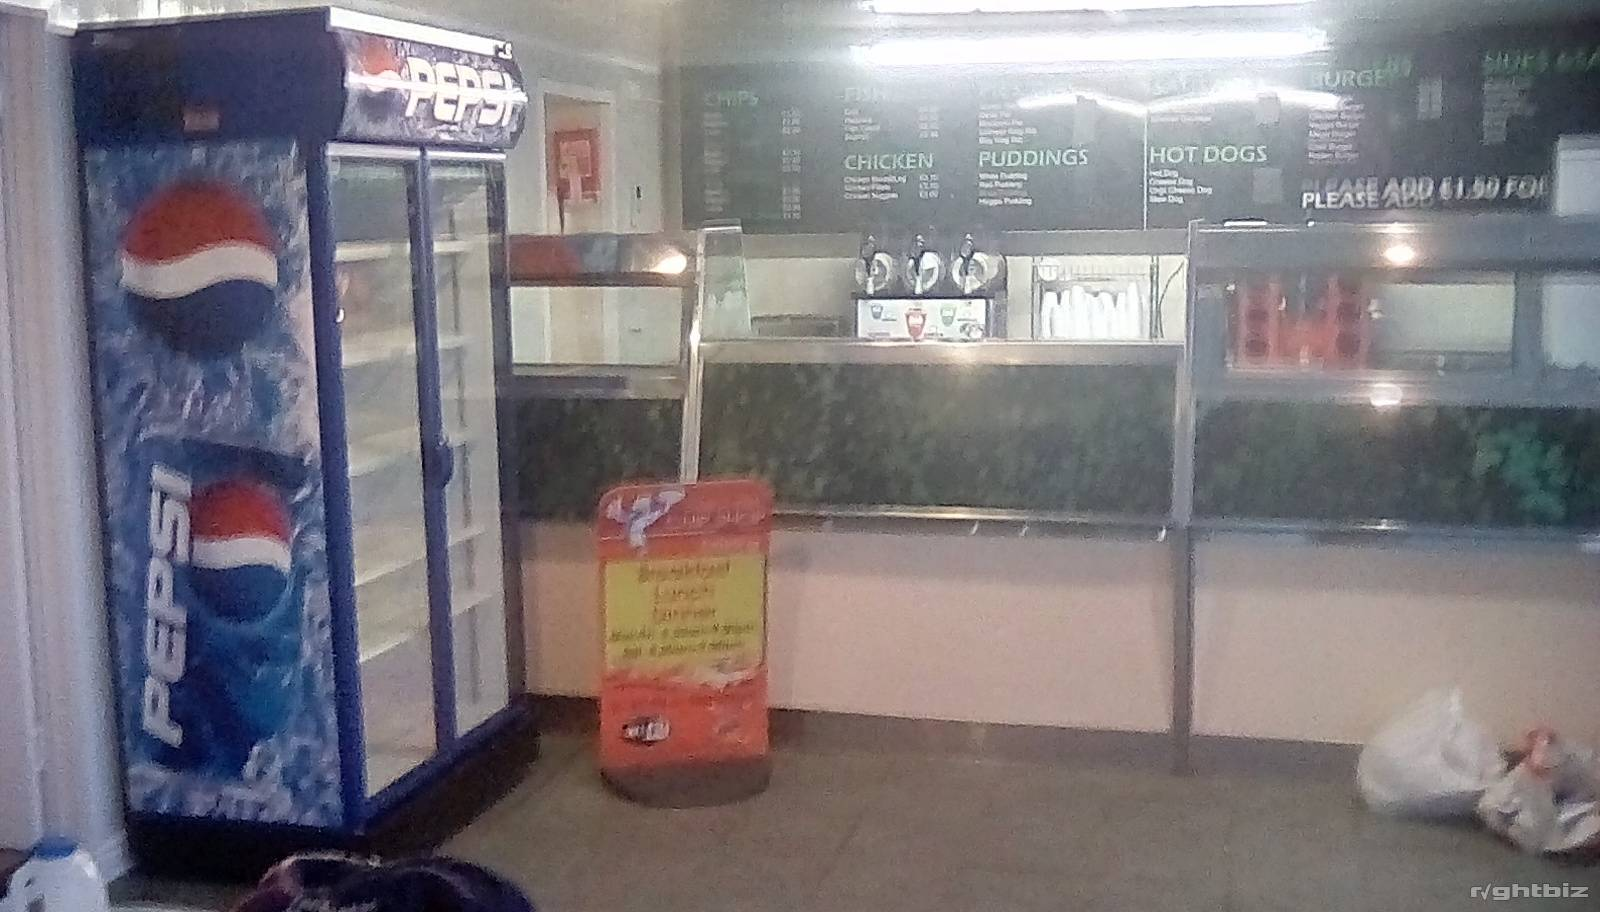 Fish and chip shop for sale or lease in Stornoway on the Island of Lewis. been trading for over 50 - Image 4